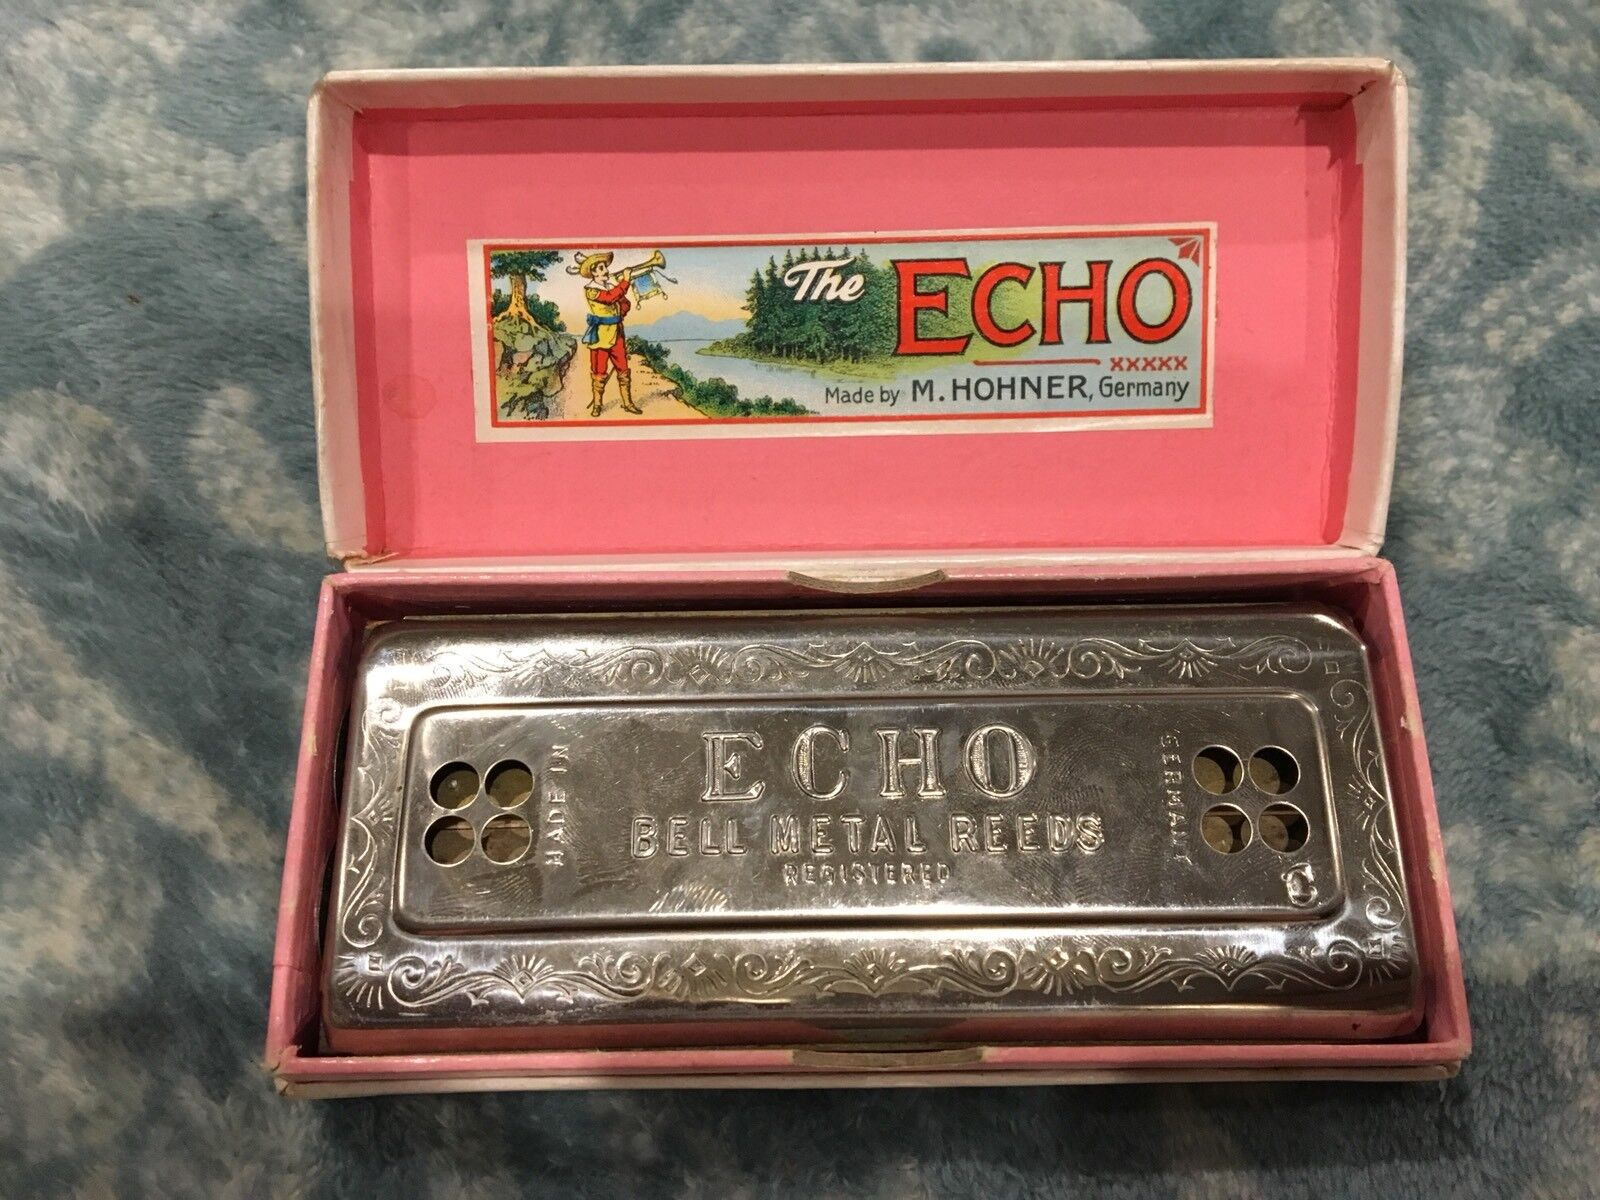 Die Echo Harp 54 64 M2 Hohner Made in Germany C G